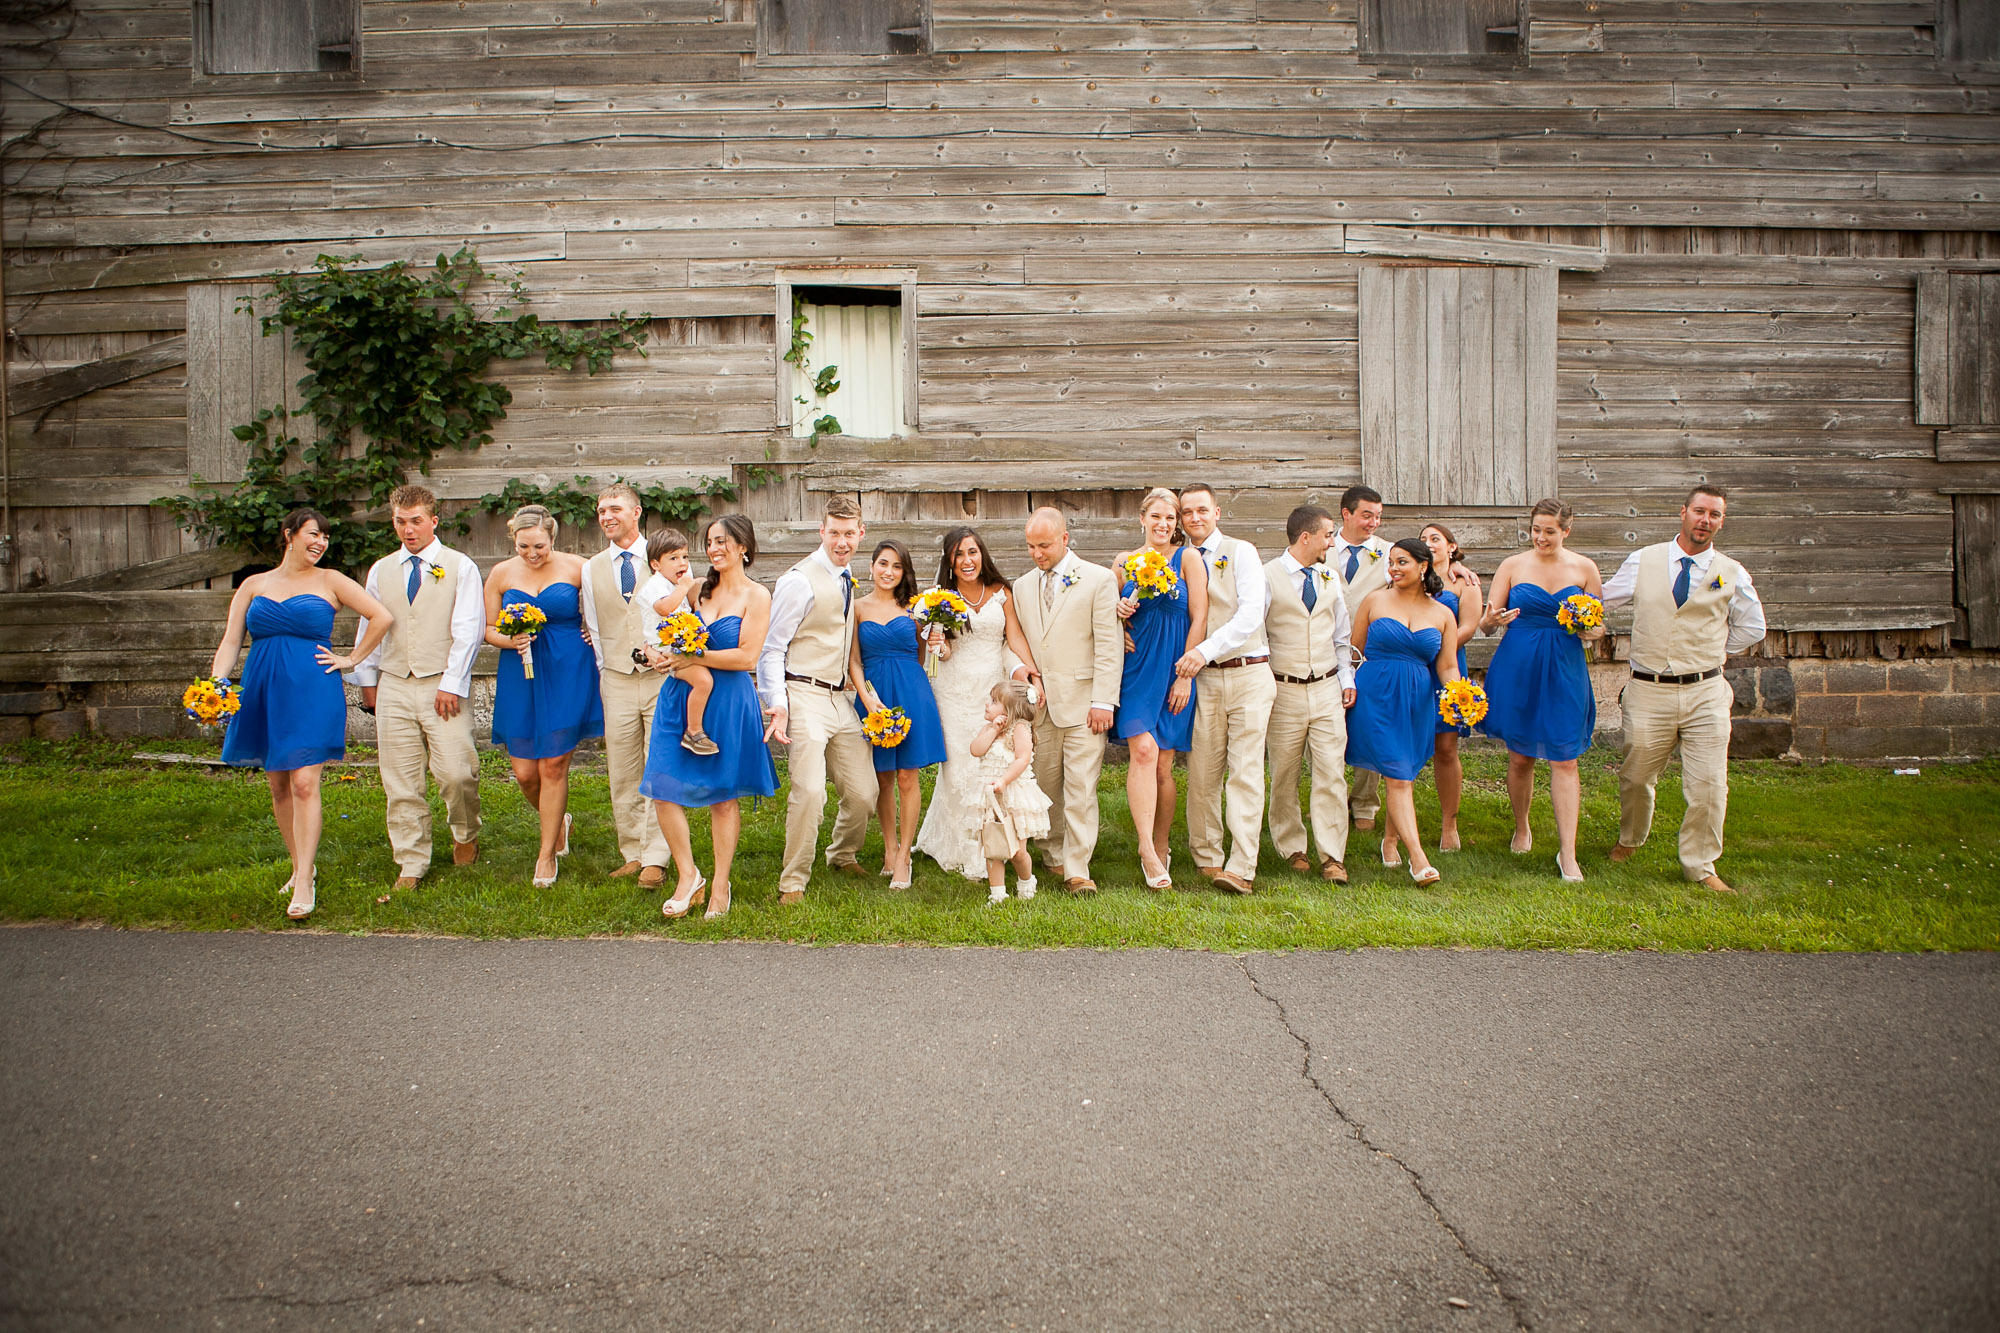 Jenna Perfette Photography - Big Bridal Party Photography in NJ